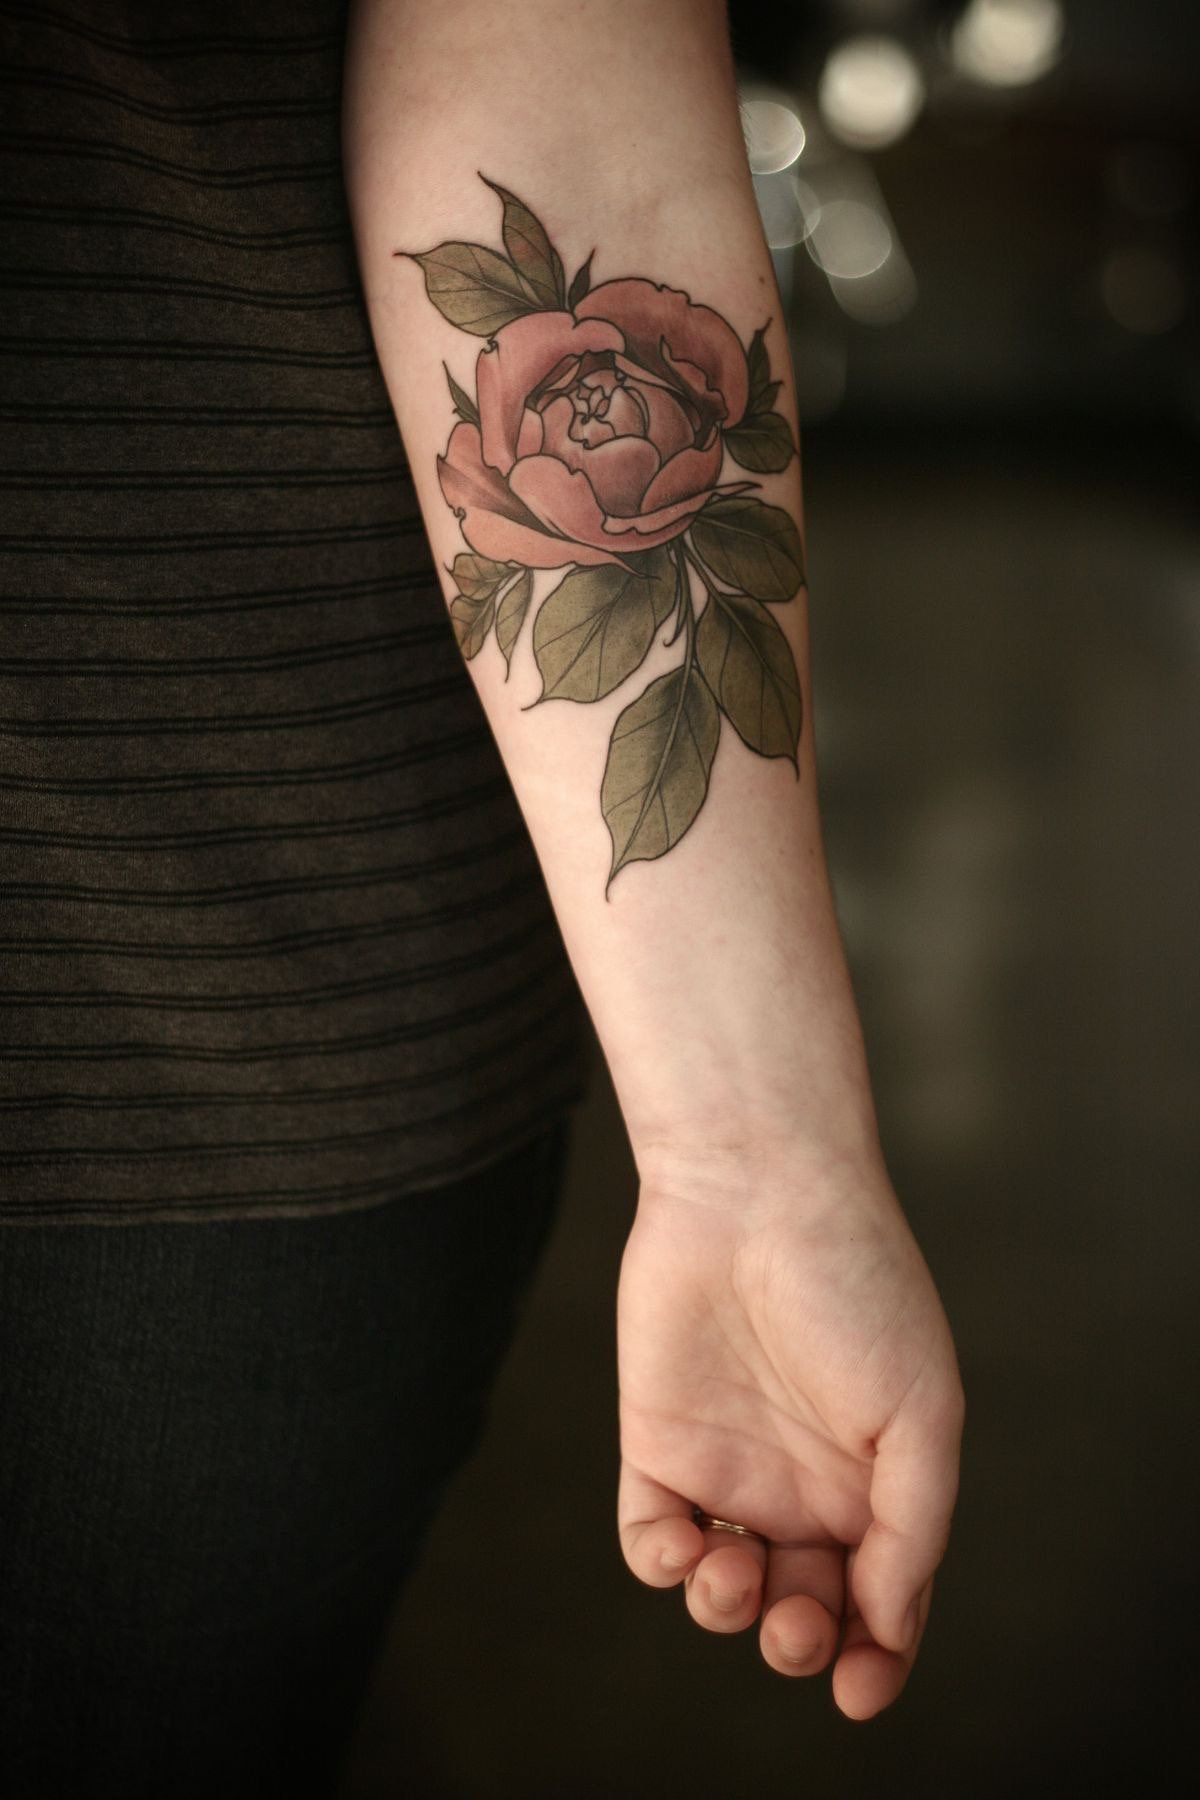 Cool tattoo ideas for girl pin by anna miriam on tattos  pinterest  tattos